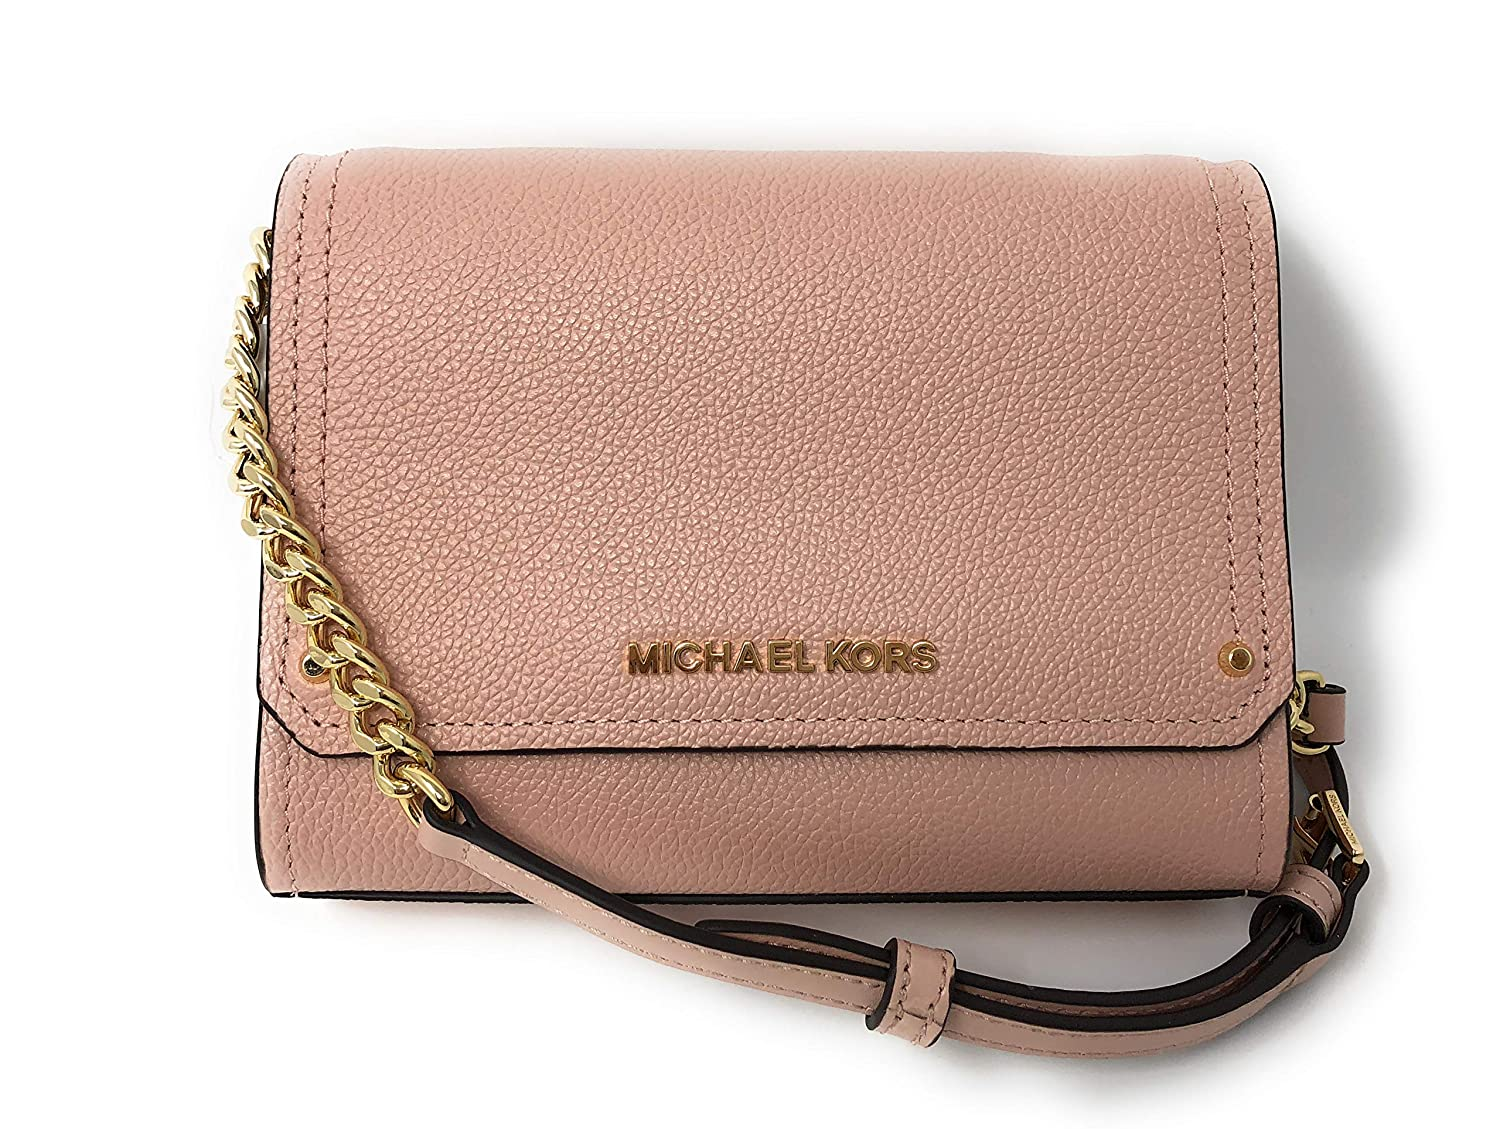 39446fdb91af Michael Kors Hayes Small Clutch Crossbody Bag Pastel Pink Leather   Amazon.co.uk  Clothing